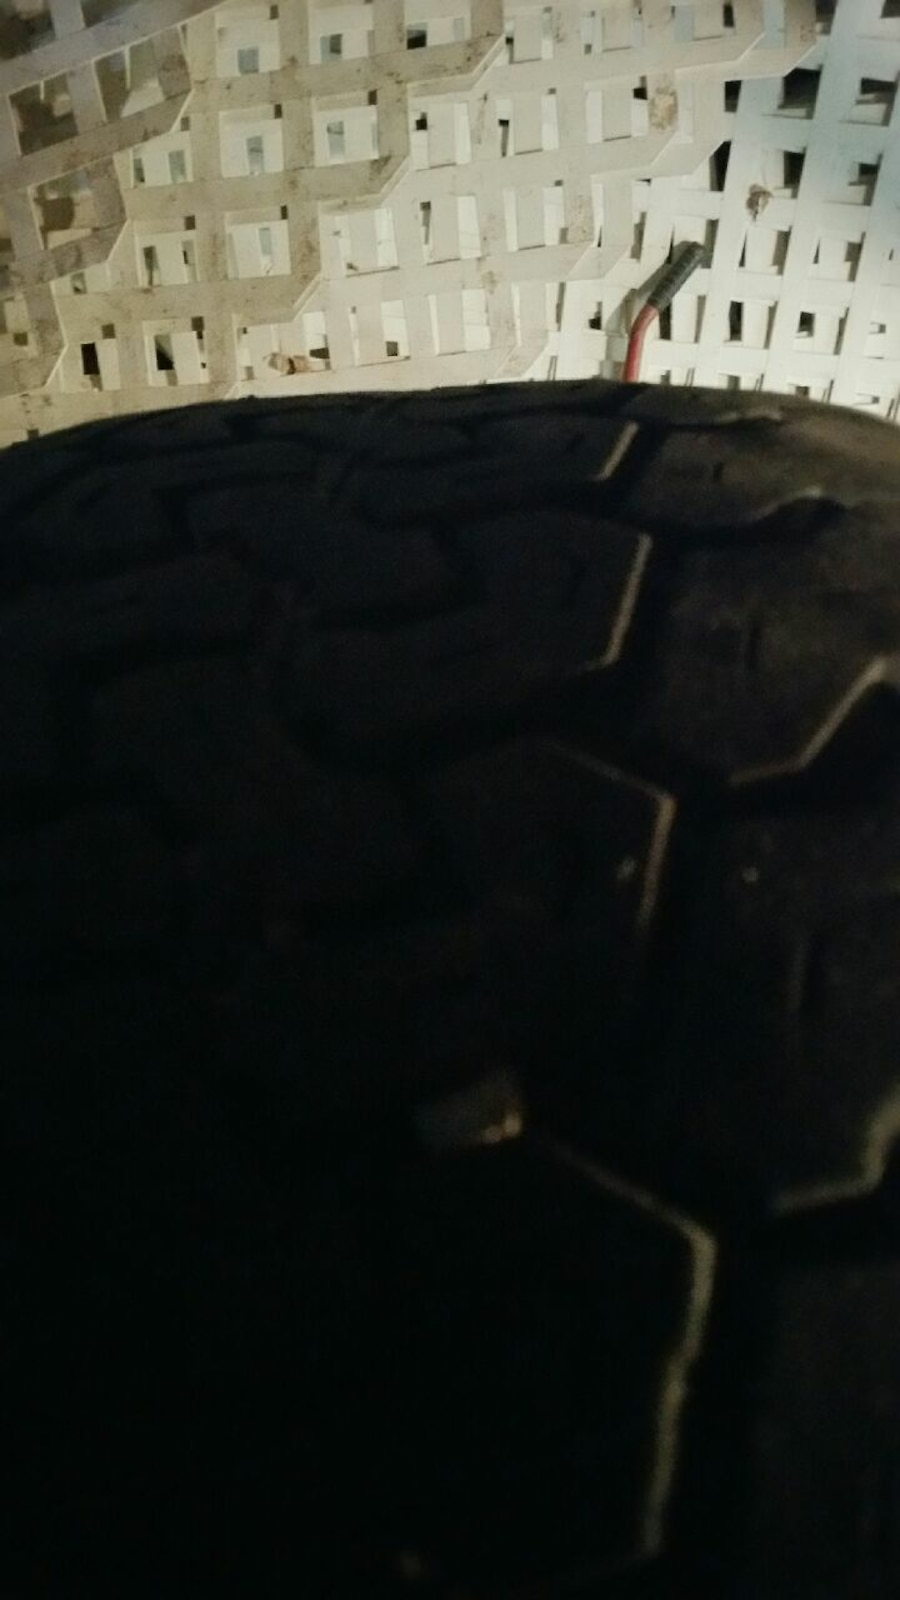 Used black and green spoked car wheel with Radial APR t in Lima